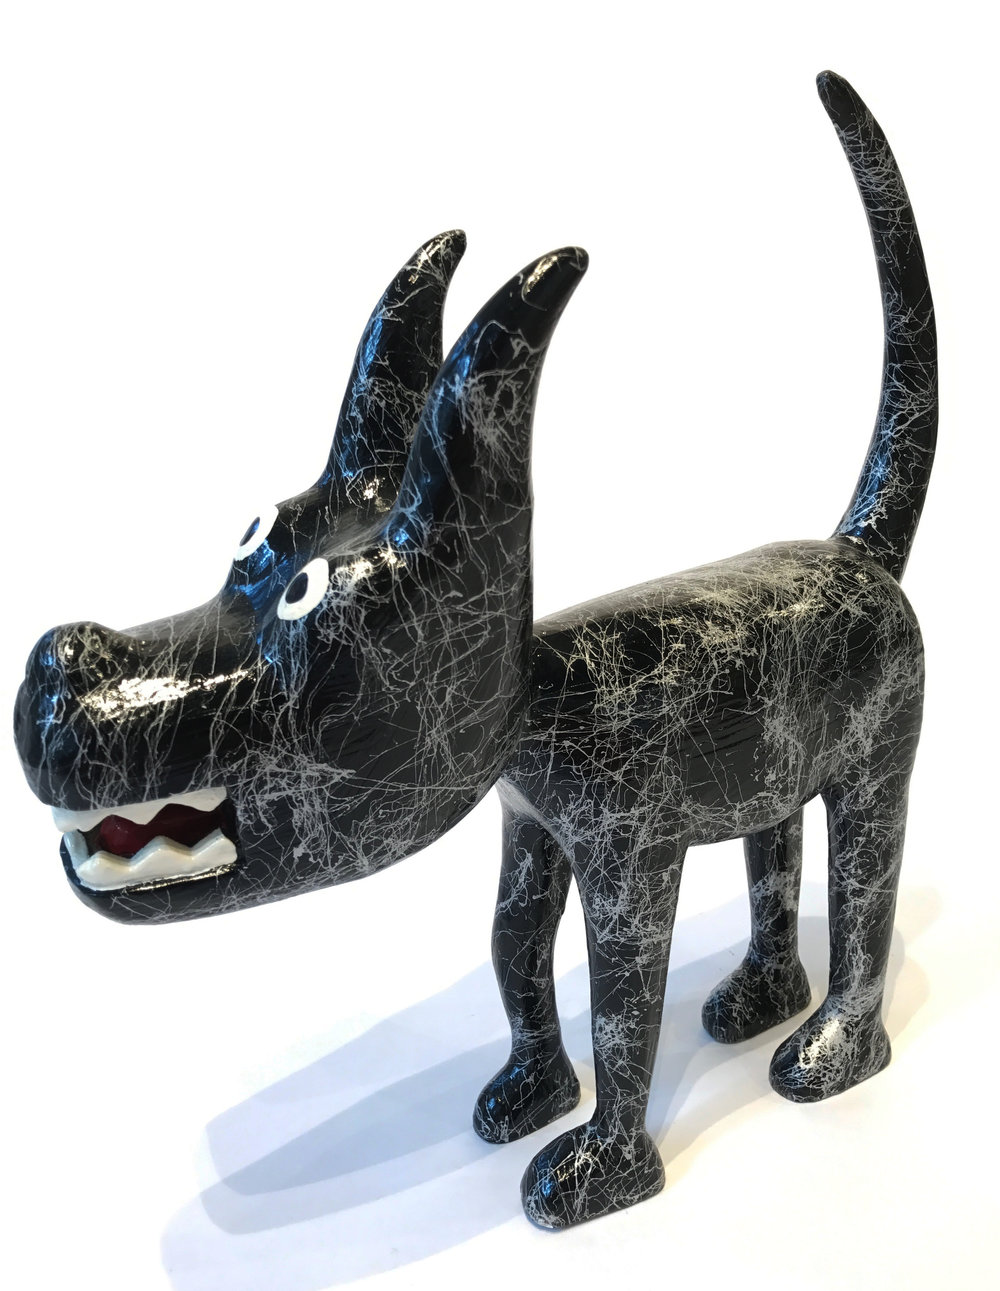 """Dog 18"" Sculpture, unique item 32 x 32 x 9 cm 2010"